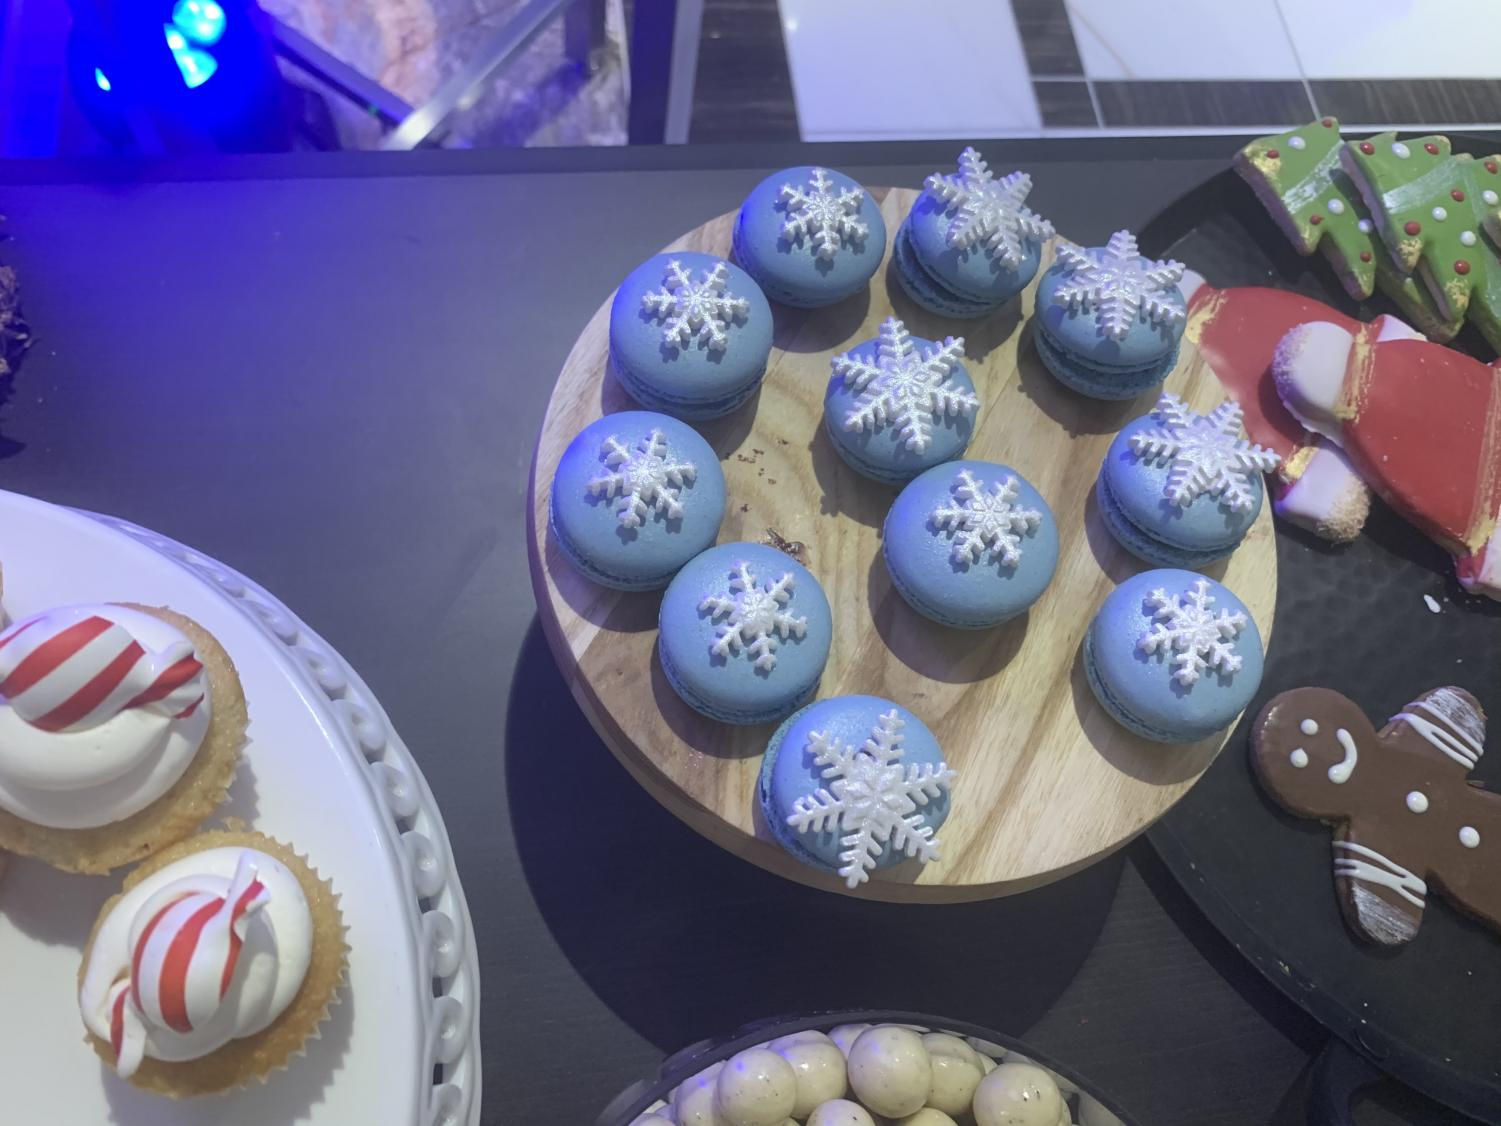 One+of+the+more+visually+appealing+desserts%2C+the+macaroons+constantly+ran+out.++There+were+various+colors+that+ran+with+the+winter+theme%2C+including+the+blue+chocolate+macaroon+with+a+candy+snowflake+on+top.